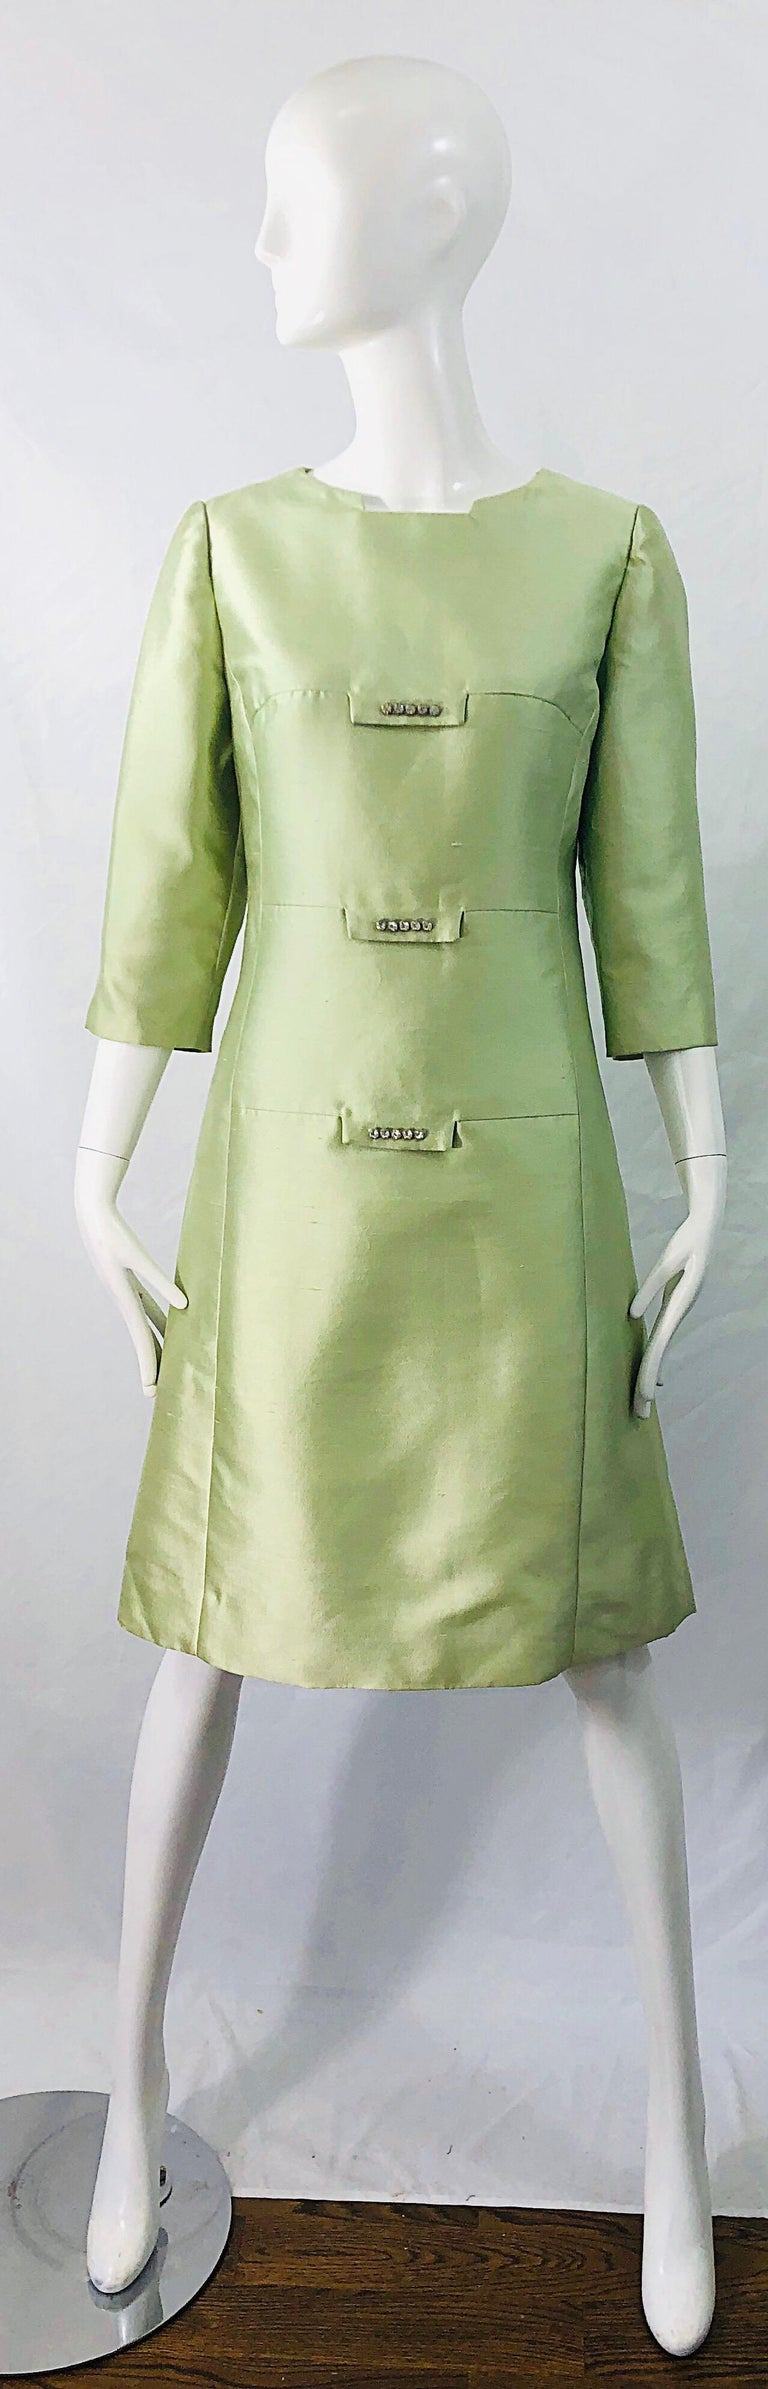 Chic 1960s mint green raw silk shantung rhinestone encrusted A-Line dress ! Features a architectural neckline. Tailored bodice with a forgiving A-Line skirt. Hidden zipper up the back with hook-and-eye closure. Fully lined. Perfect for any day or